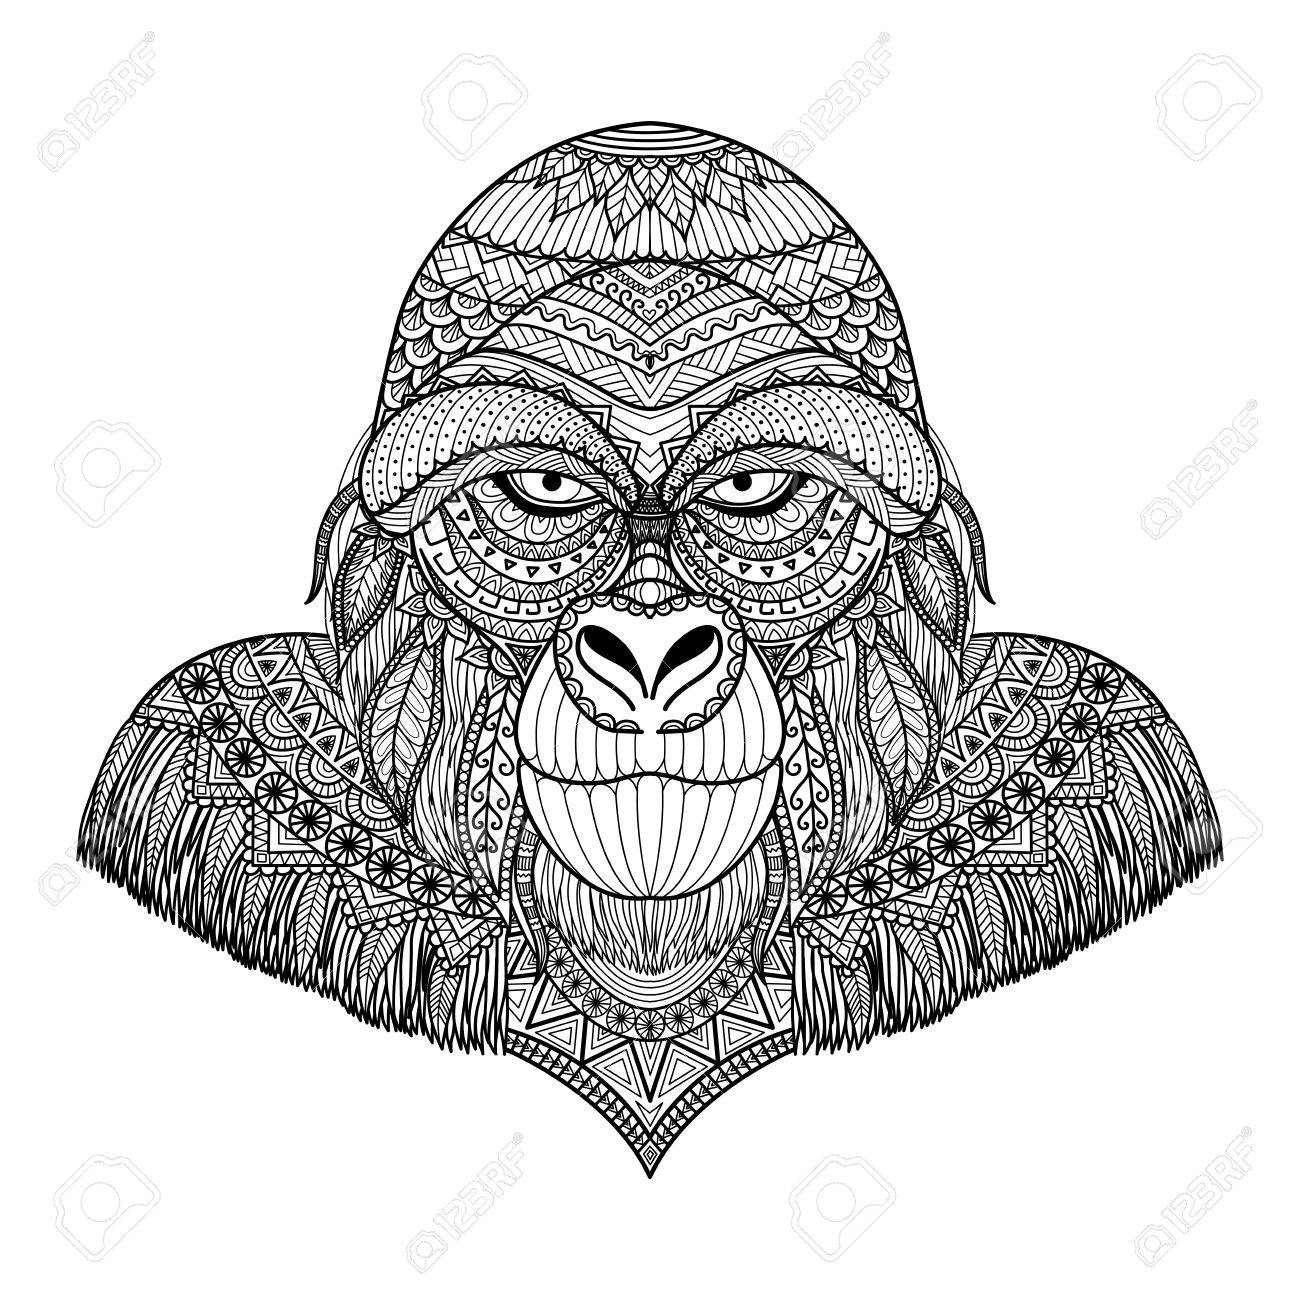 Clean Line Doodle Art Of Gorilla For Adult Coloring Book Pages ...